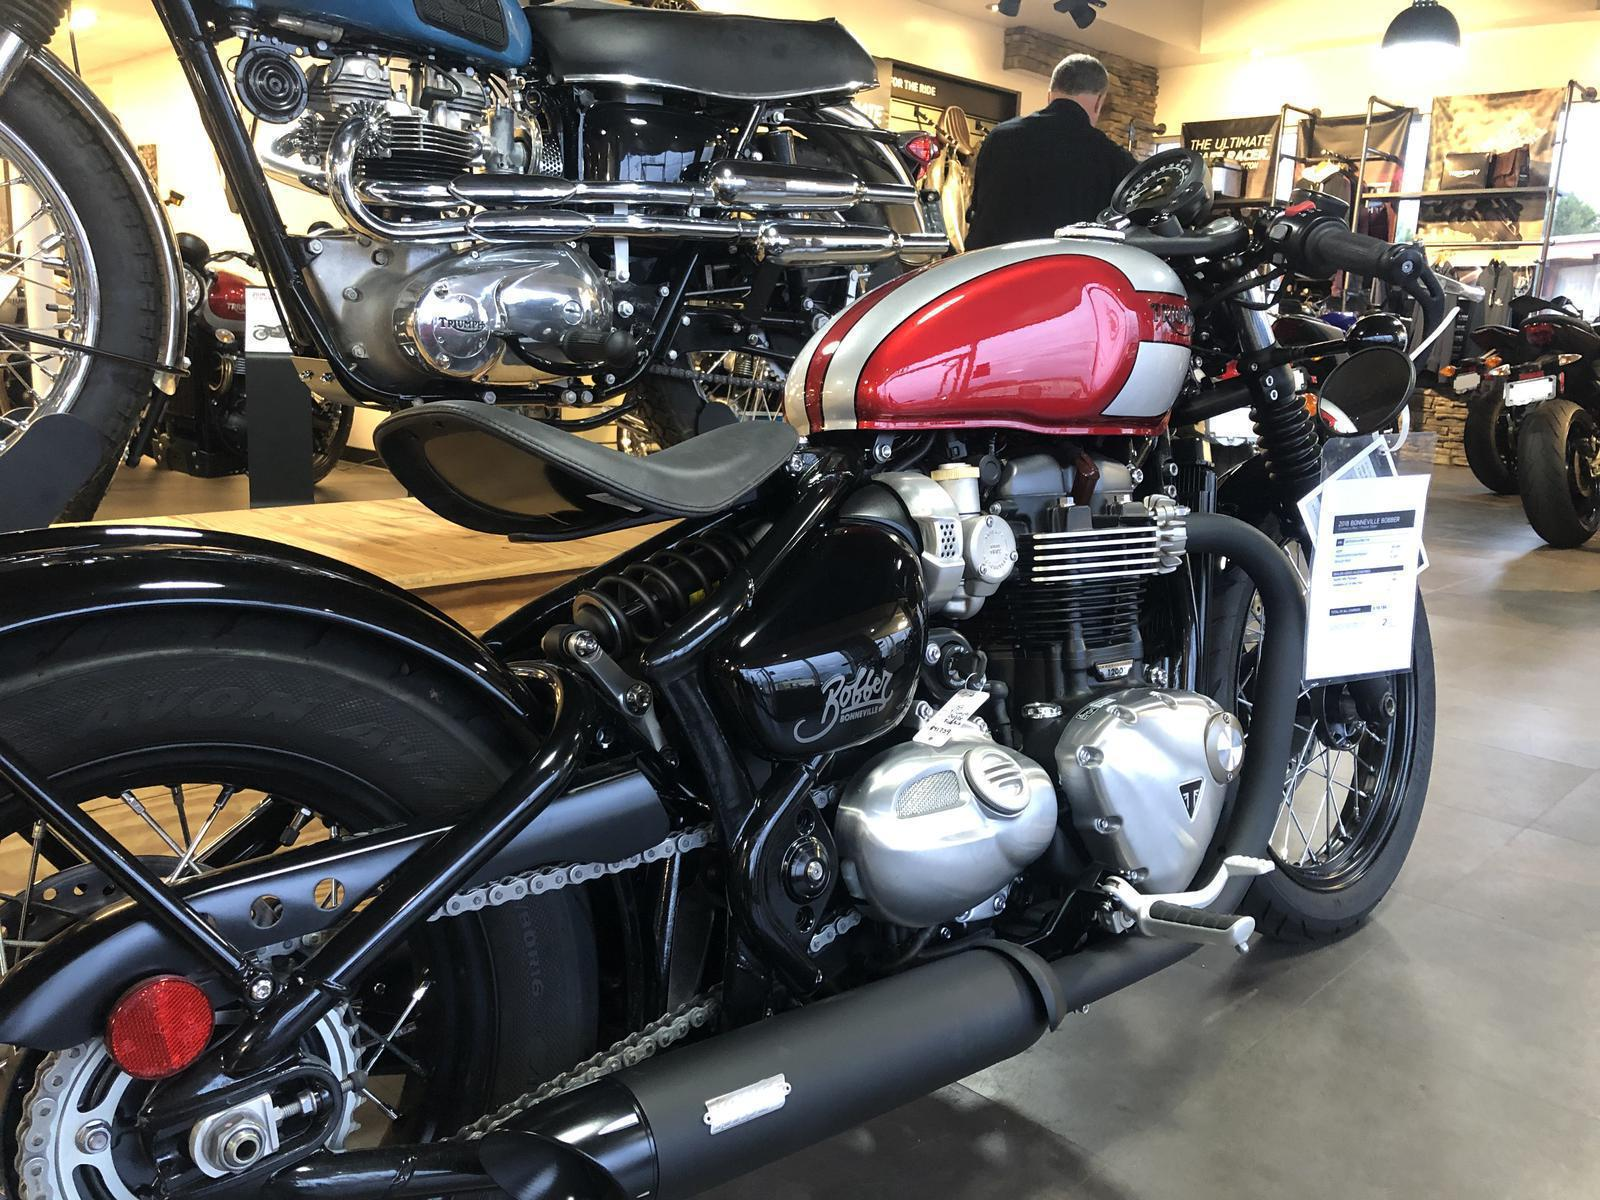 2018 Triumph Bobber For Sale In Buford Ga Hourglass Cycles 678